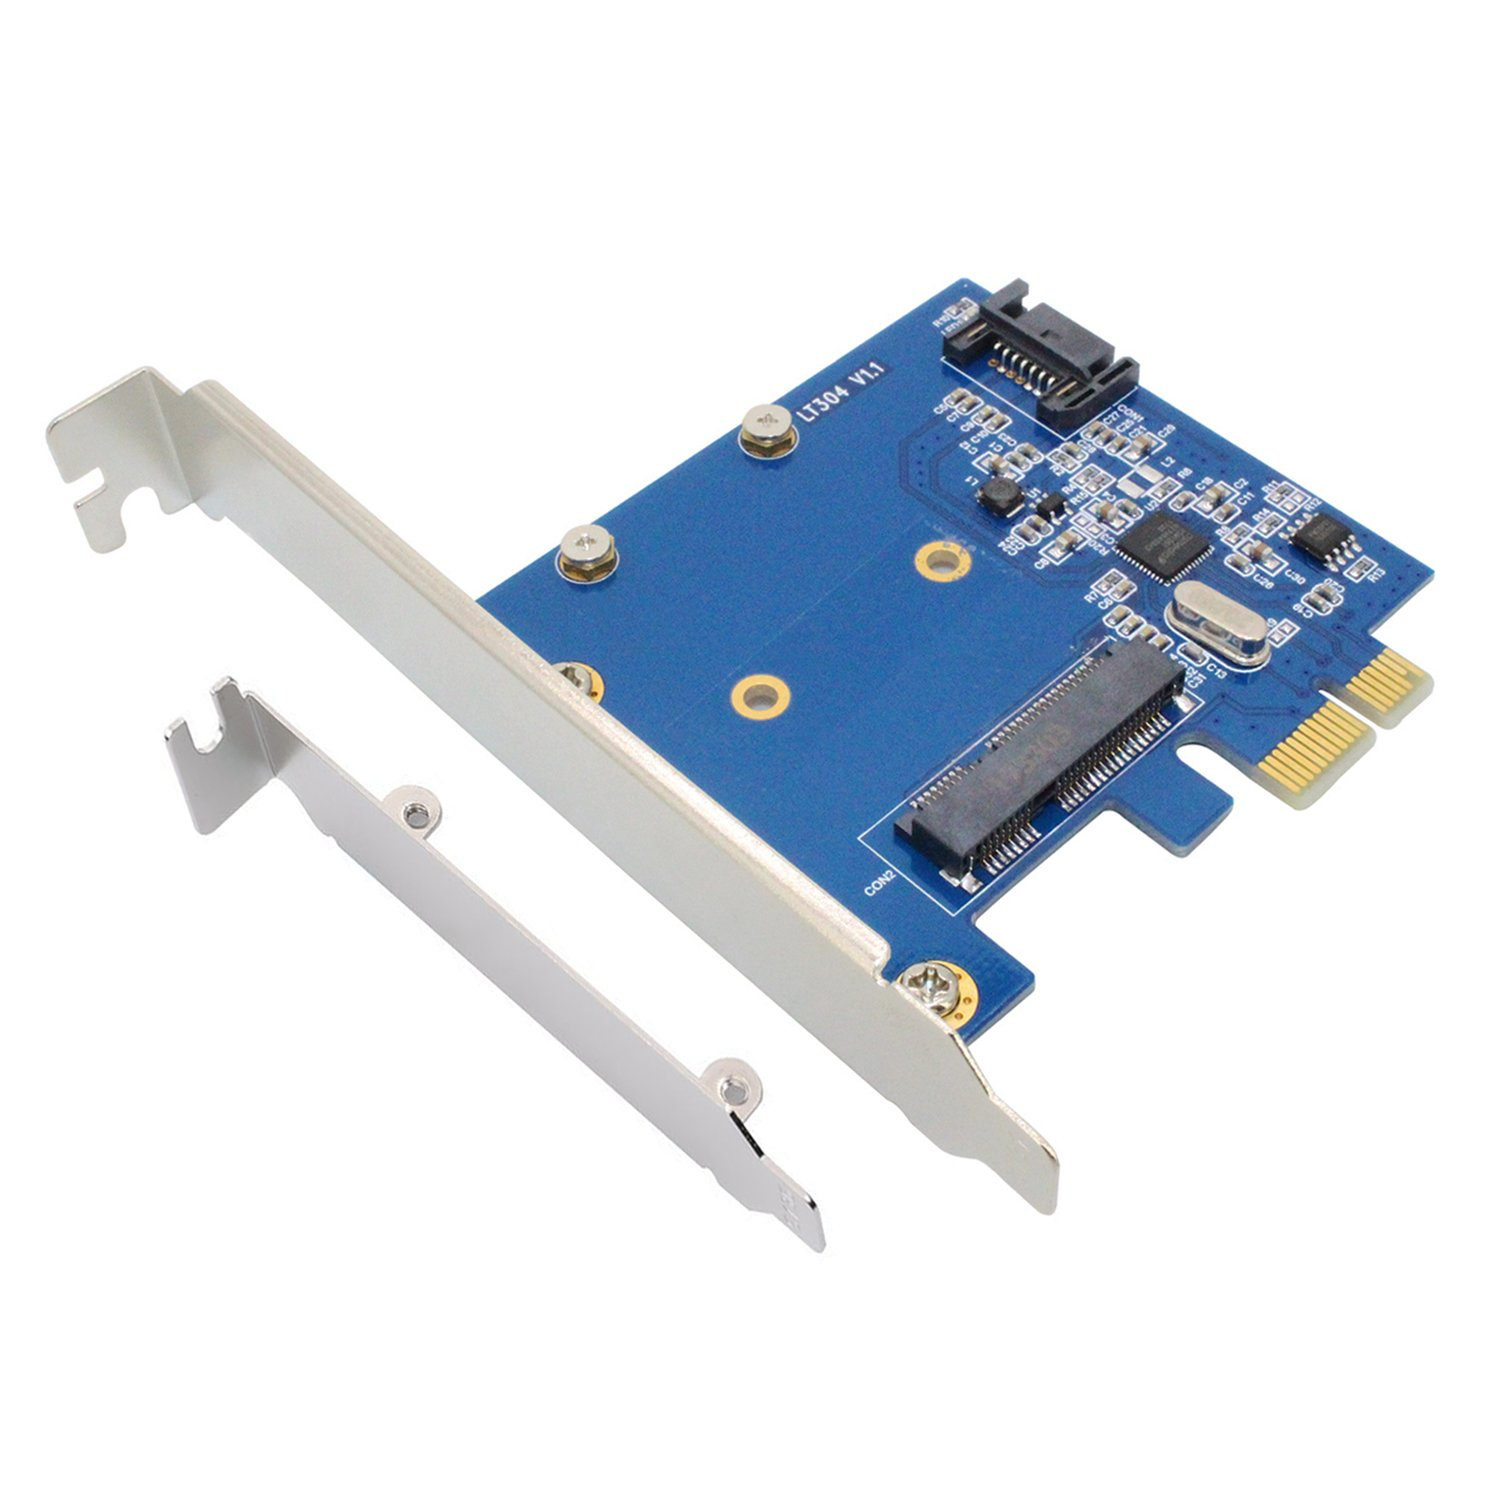 LiuTian PCIe to MSATA SSD & SATA3.0 Combo Expansion Card, PCI Express Controller Mini SATA SSD Adapter for PC Desktop with Low Bracket